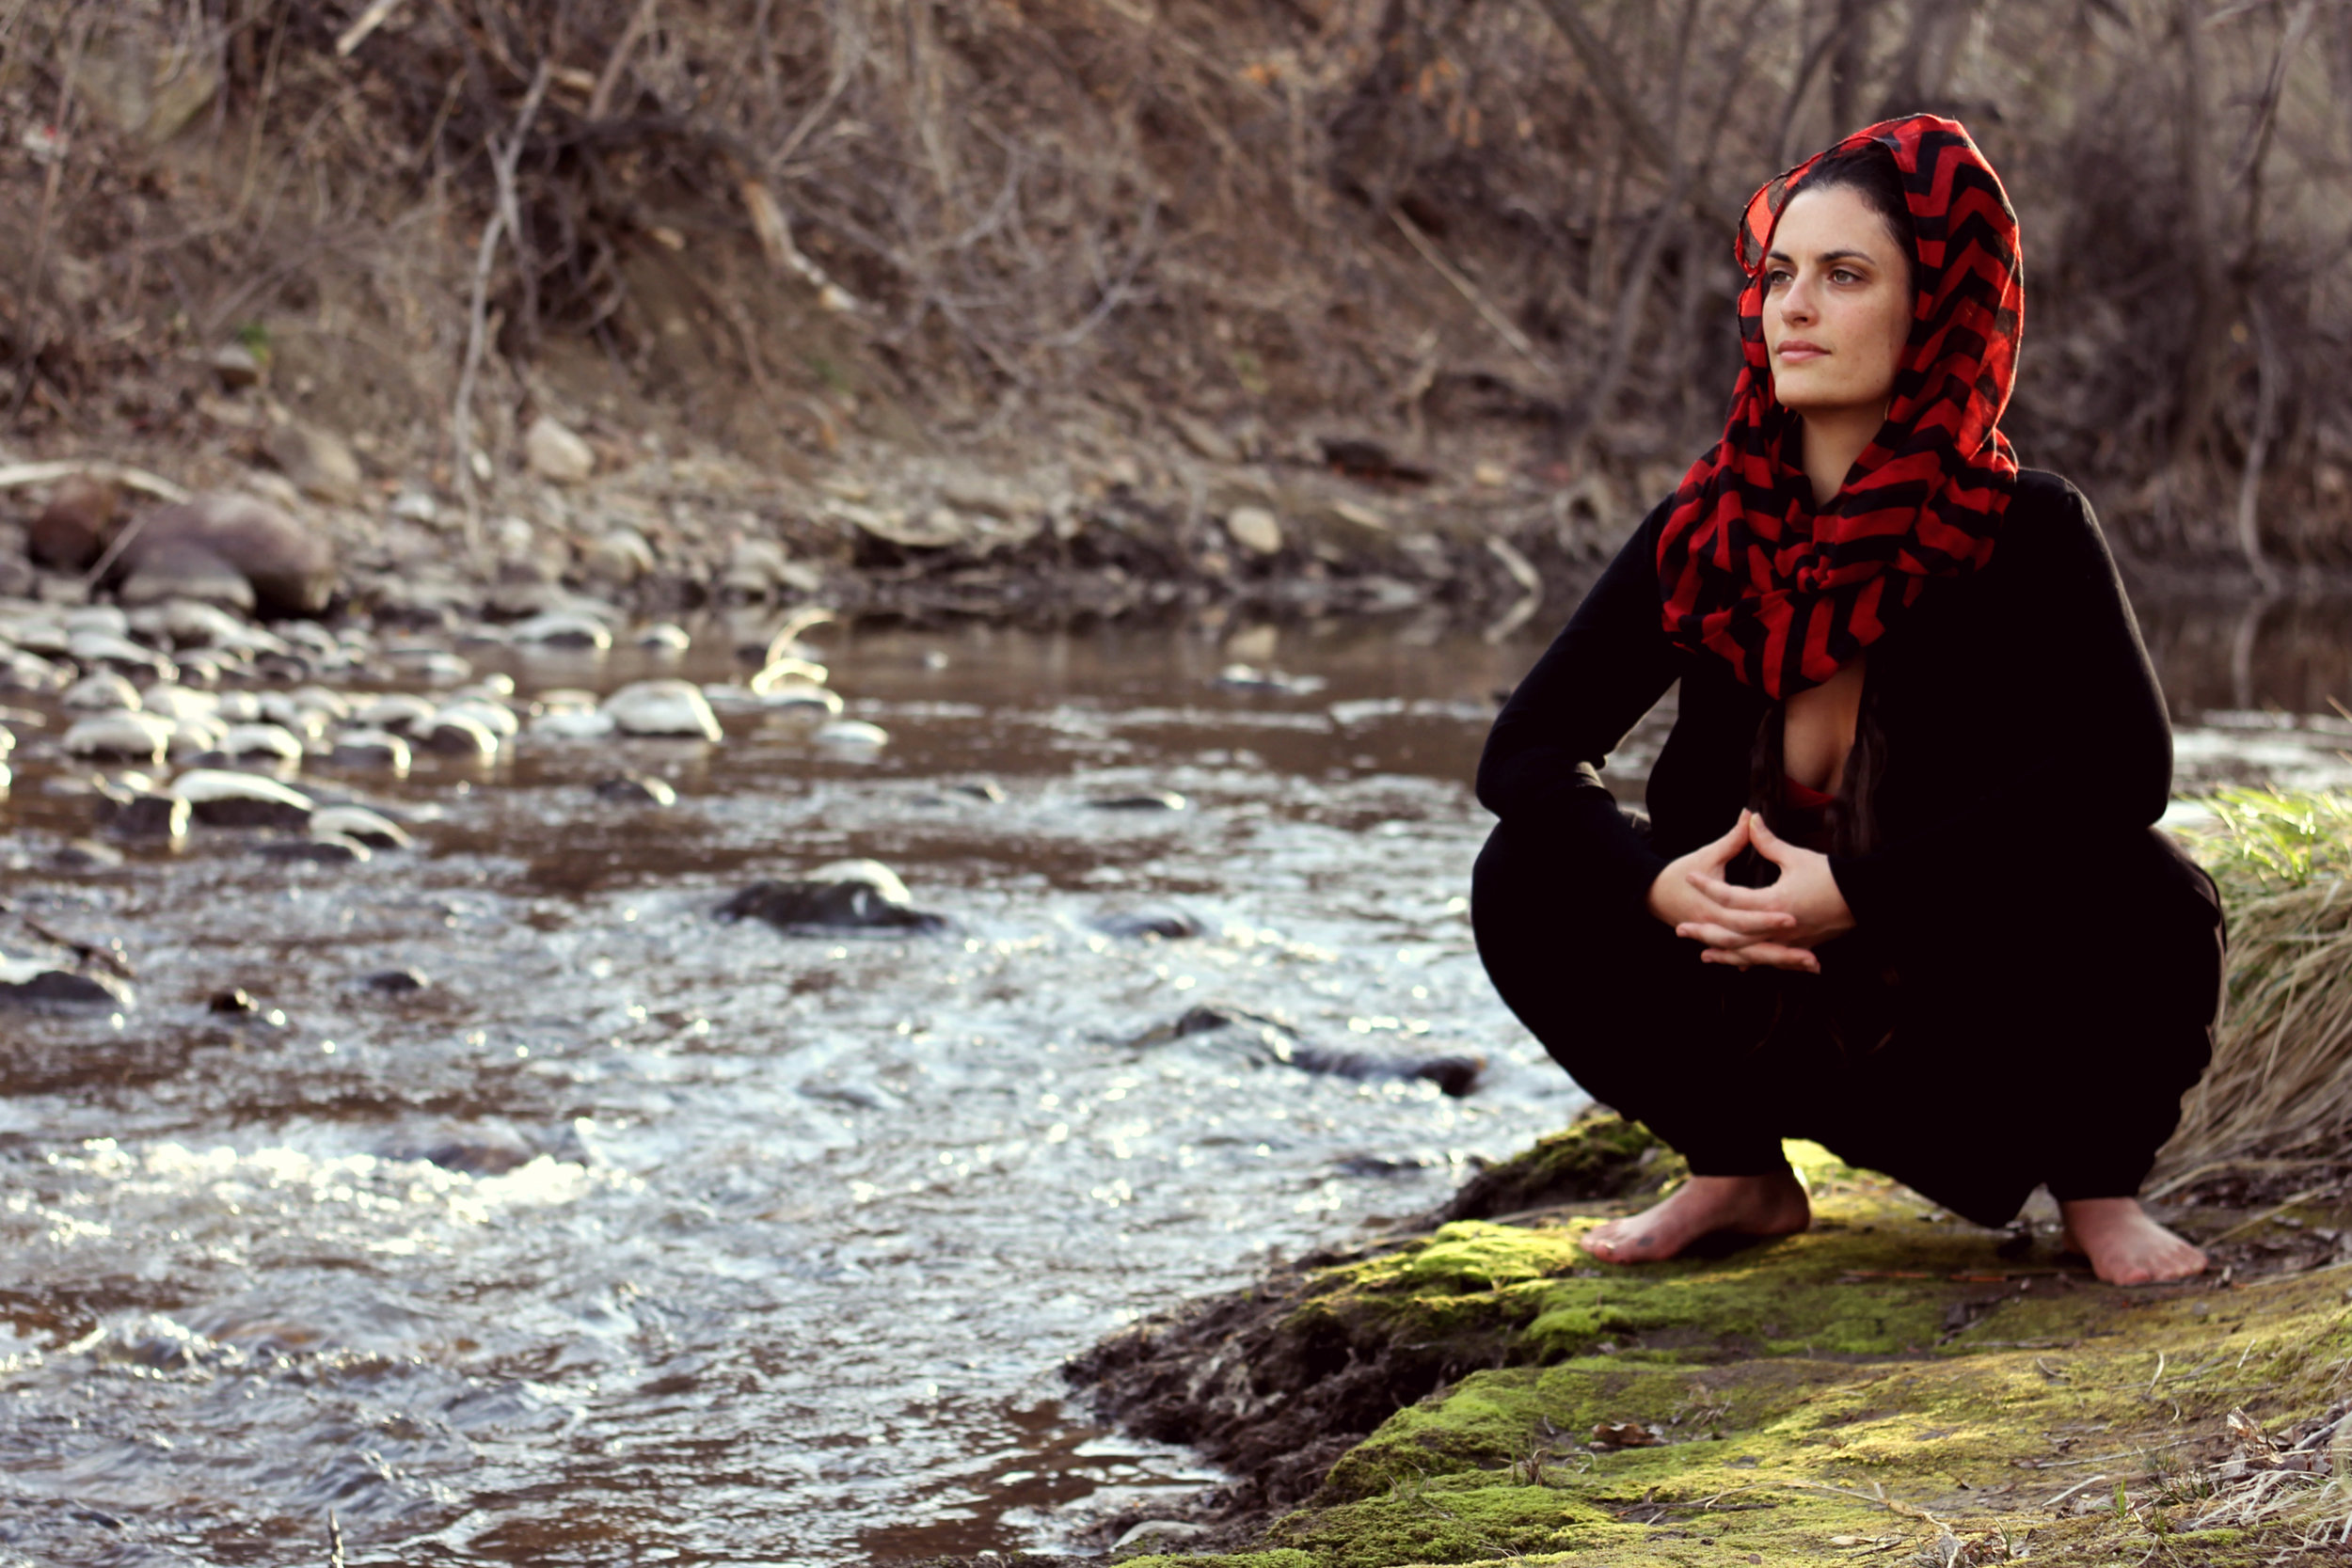 marya_stark_two_wolves_crimson_hood_boulder creek.jpg